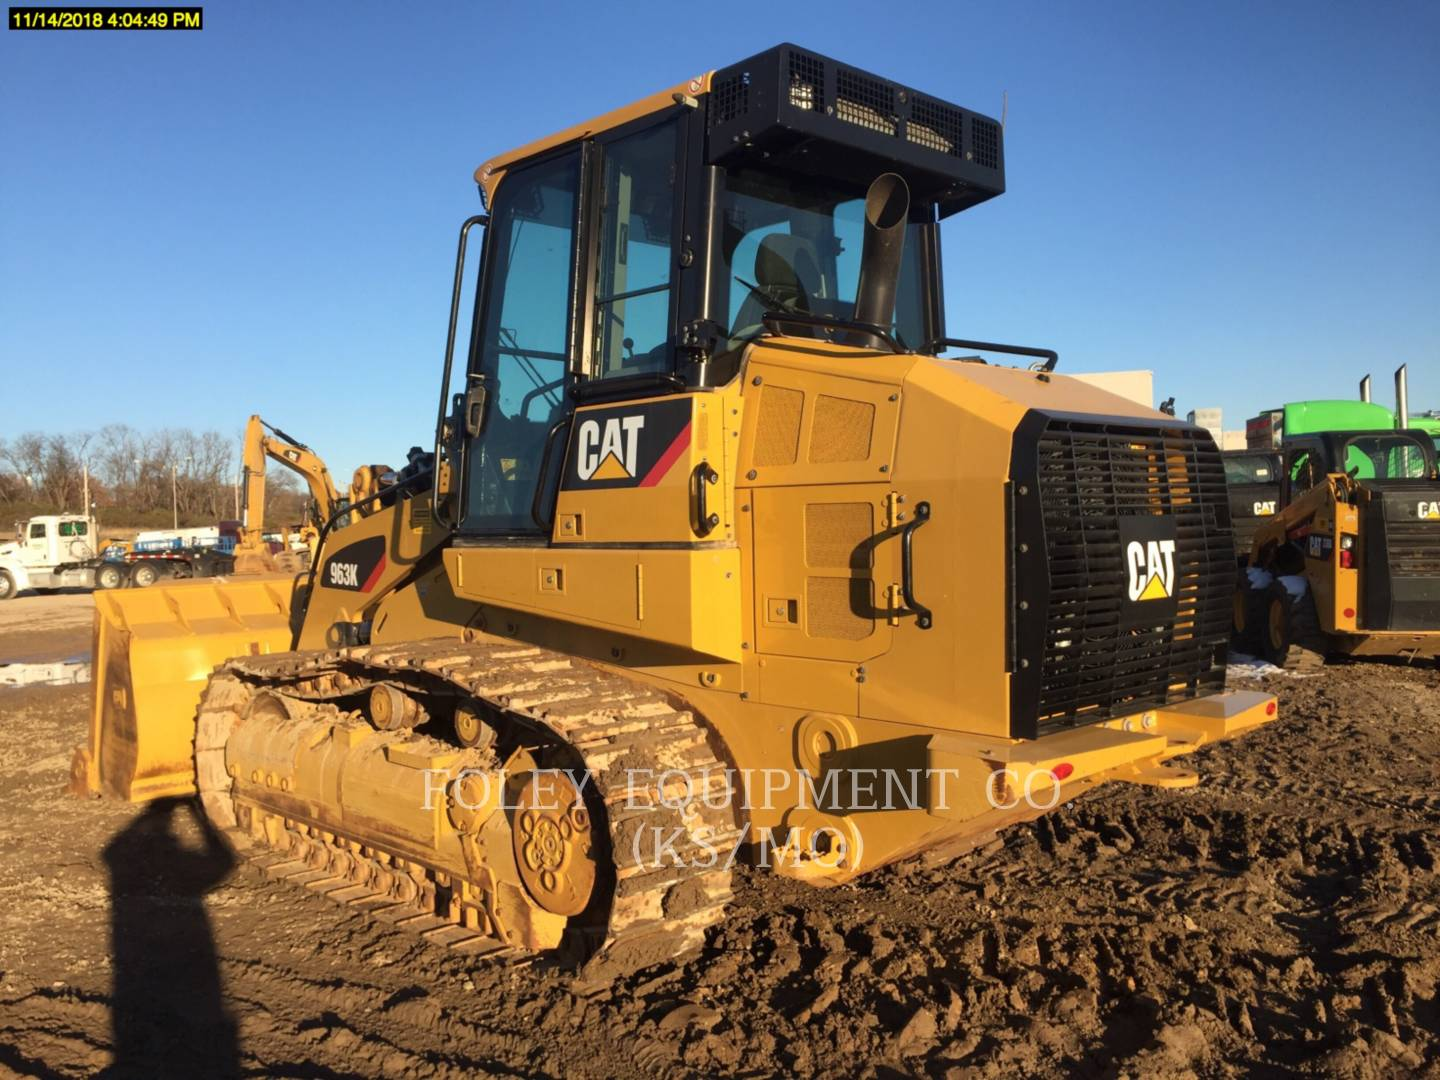 2017 Caterpillar 963K Compact Track Loader for sale in WICHITA, KS